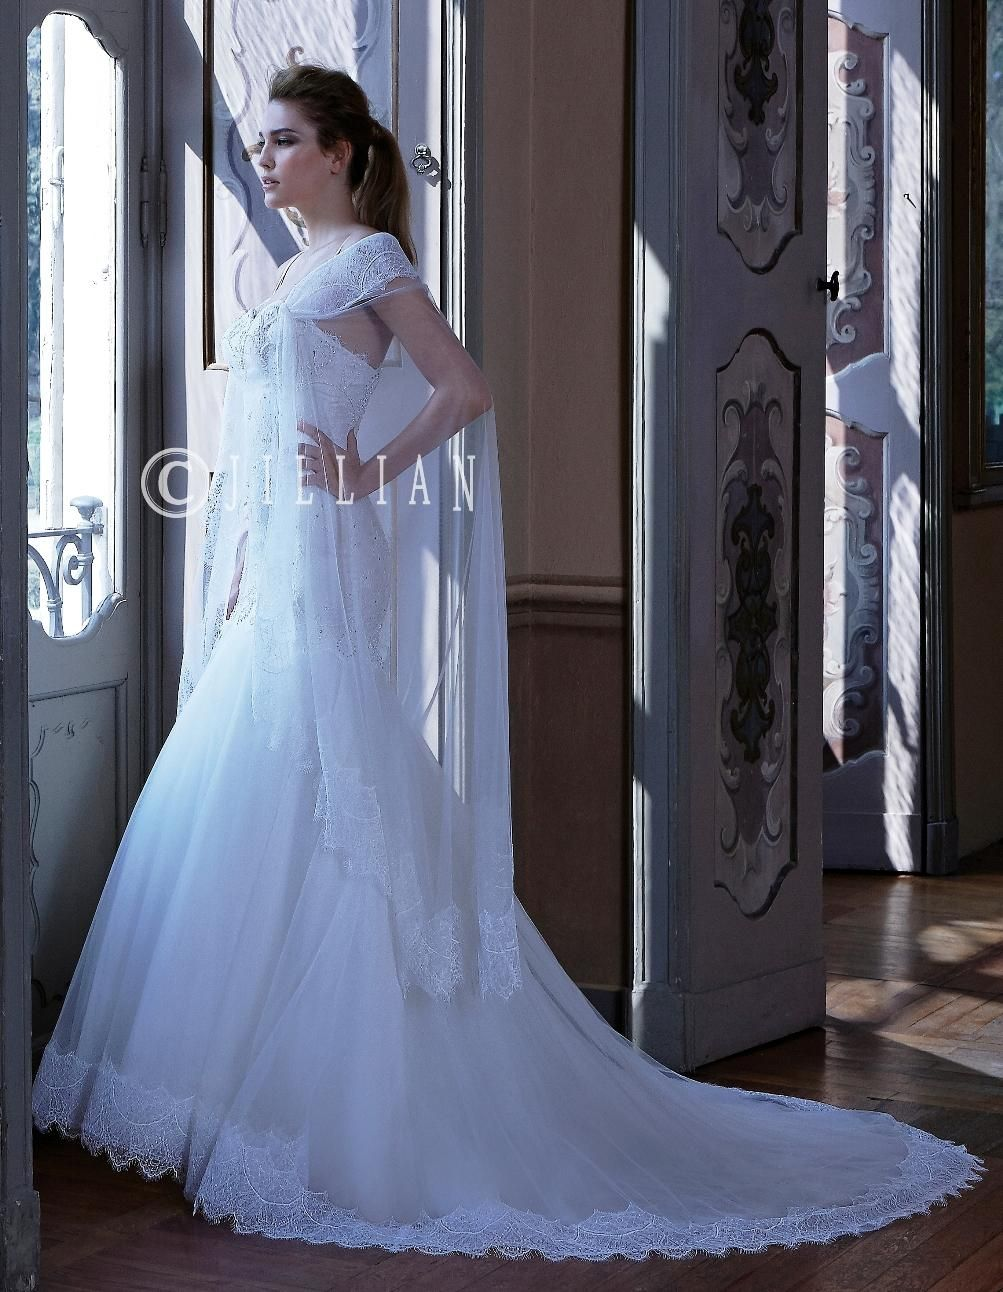 2016 jillian wedding dresses with shawl spaghetti neckline beading 2016 jillian wedding dresses with shawl spaghetti neckline beading lace tulle sheath bridal gowns with long train ombrellifo Image collections